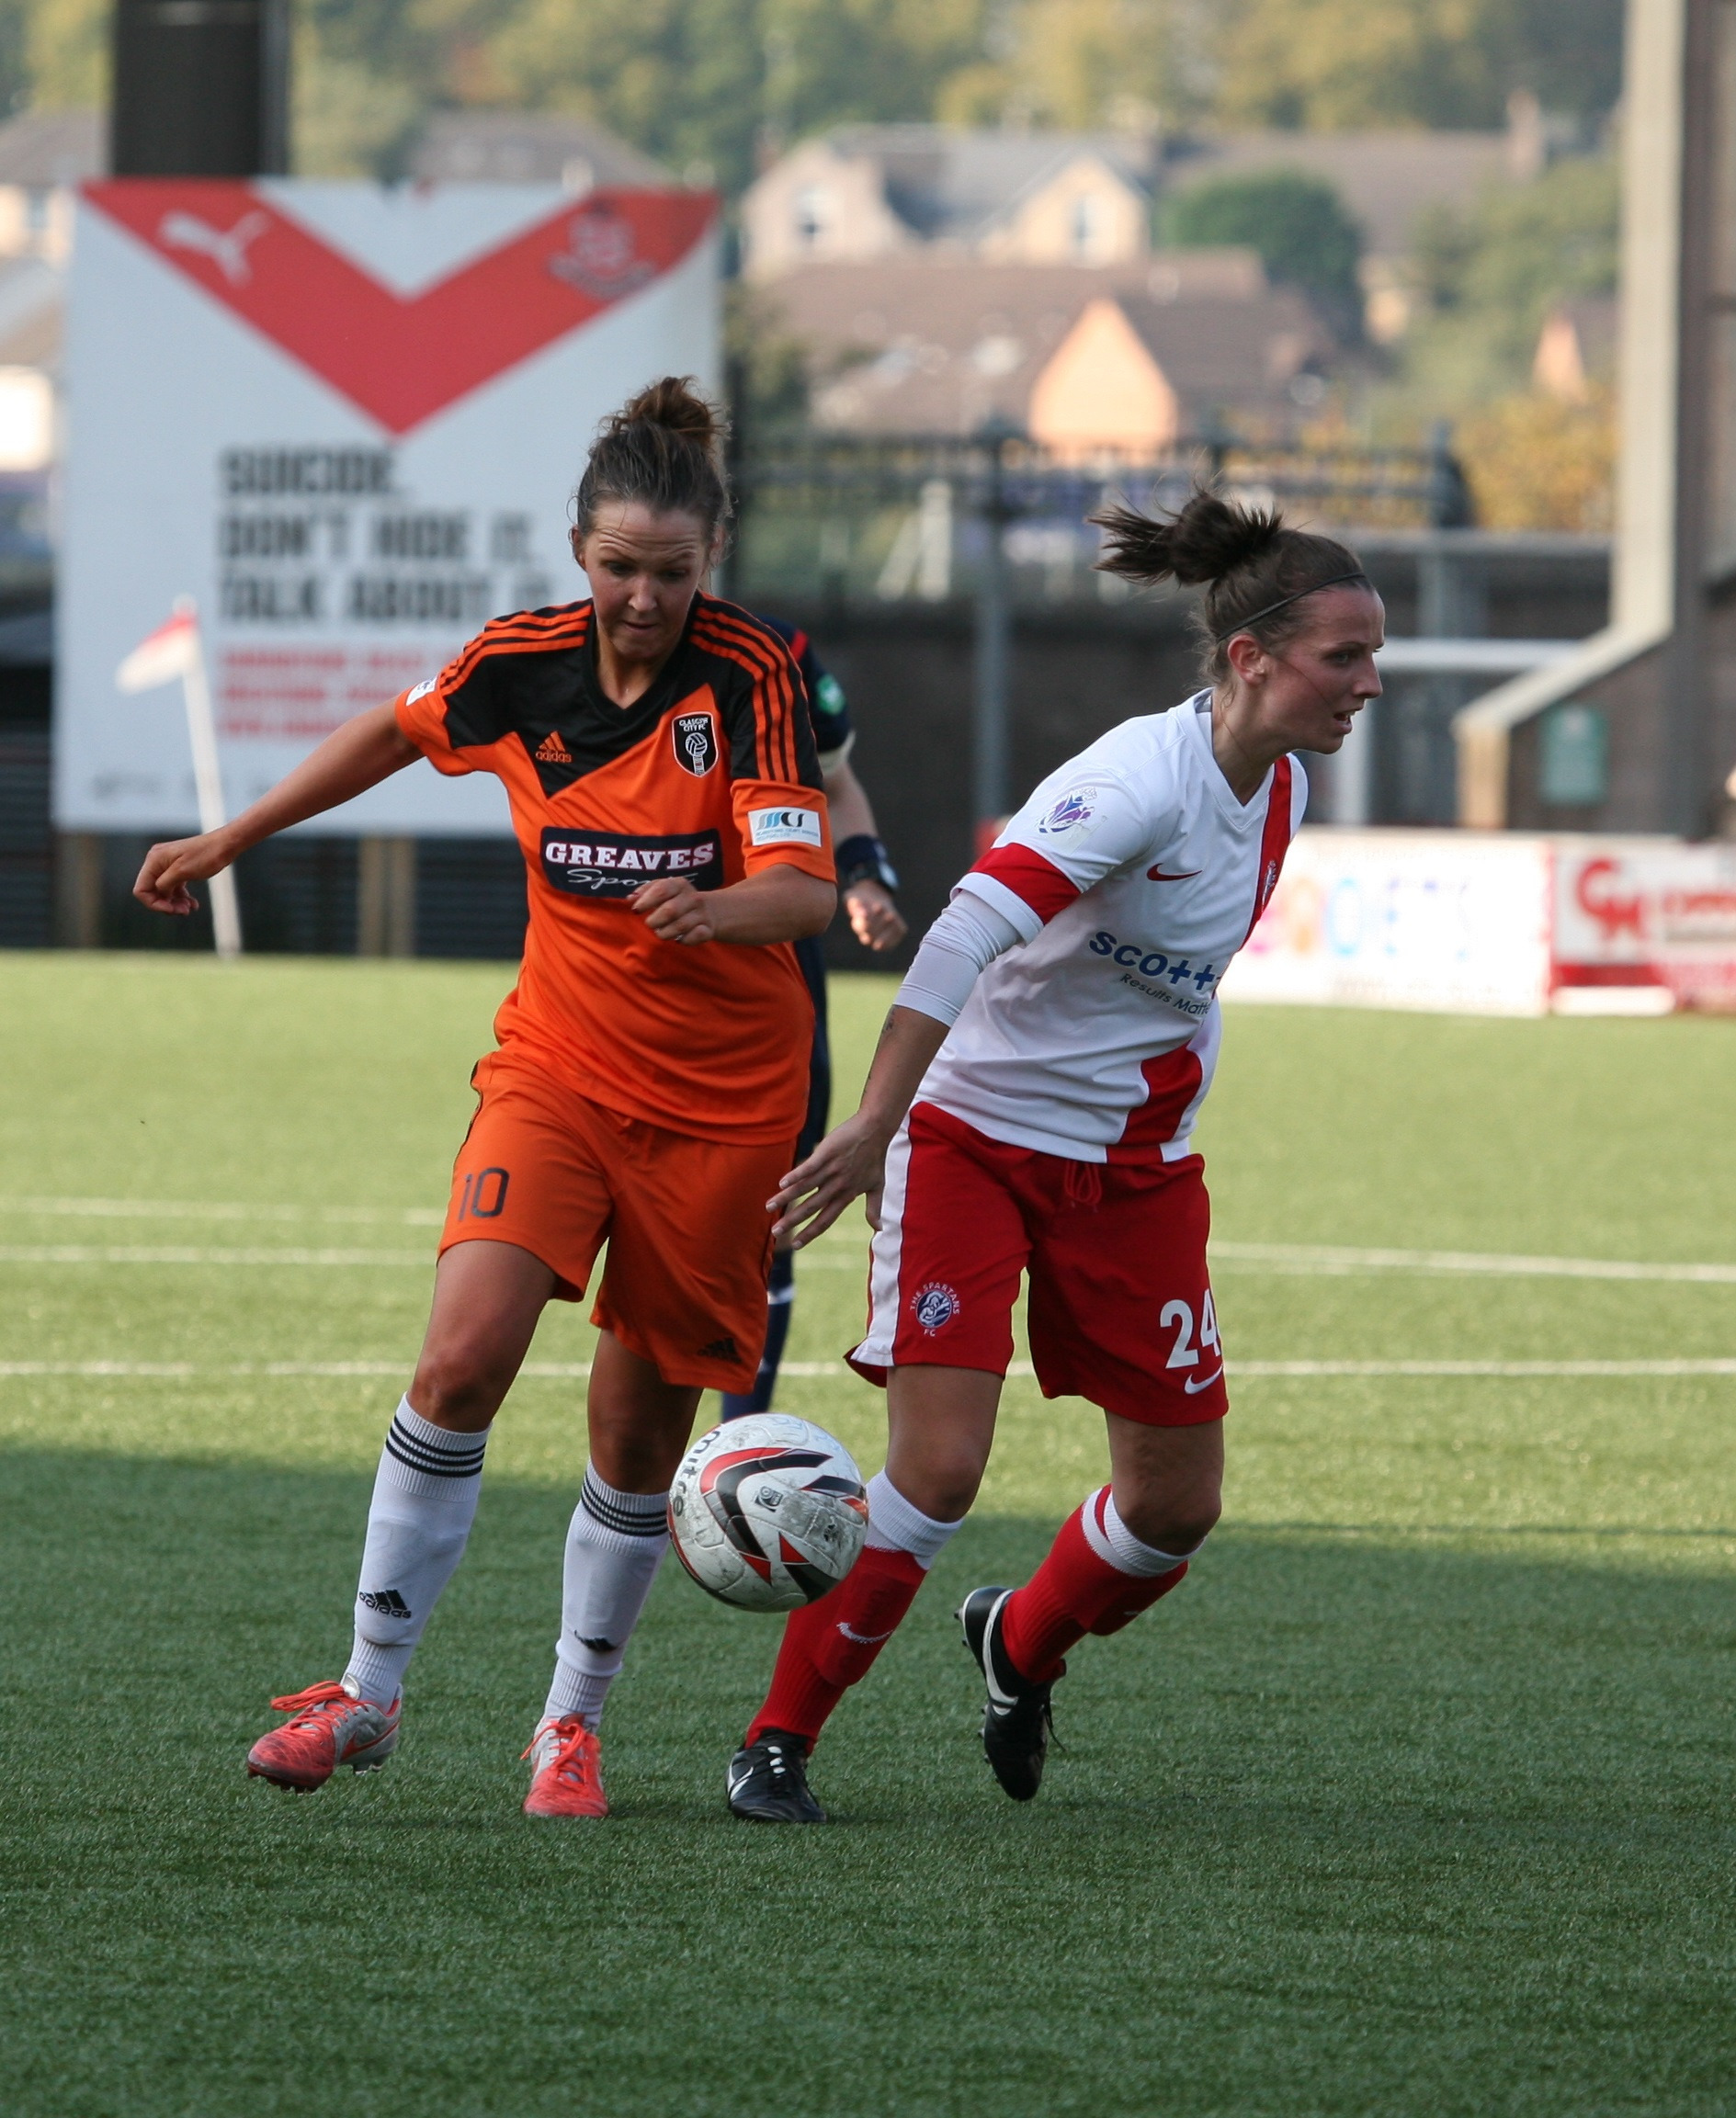 Suzanne Lappin action. Image by Andy Buist